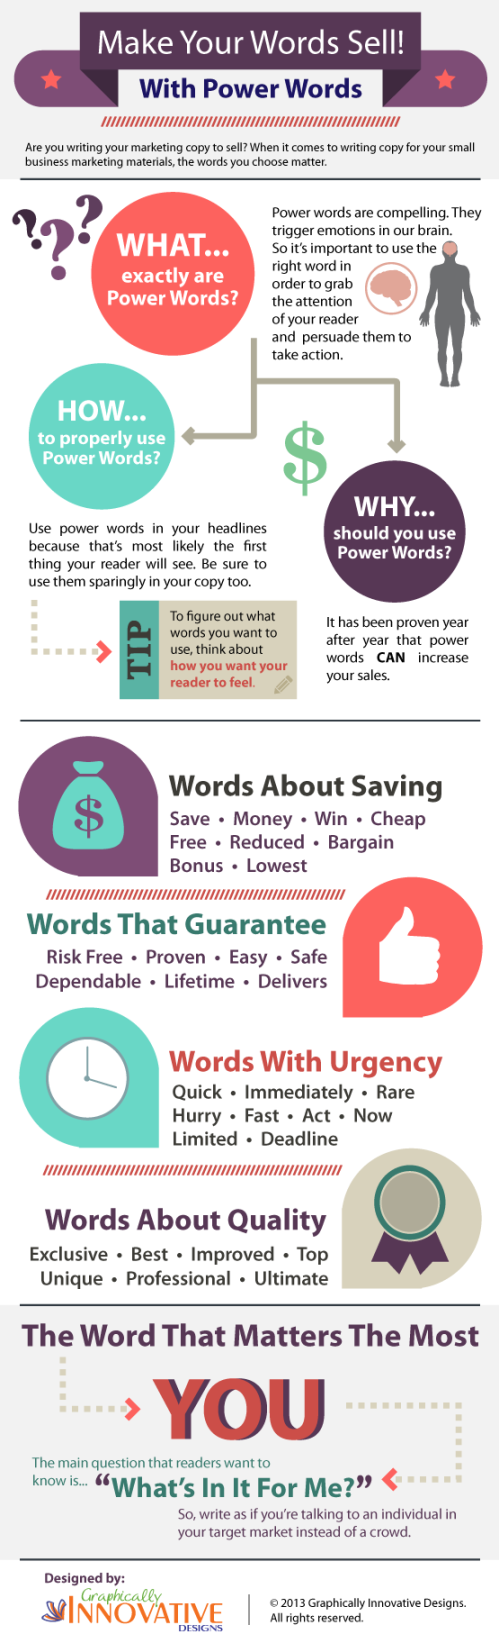 infographic-power-words